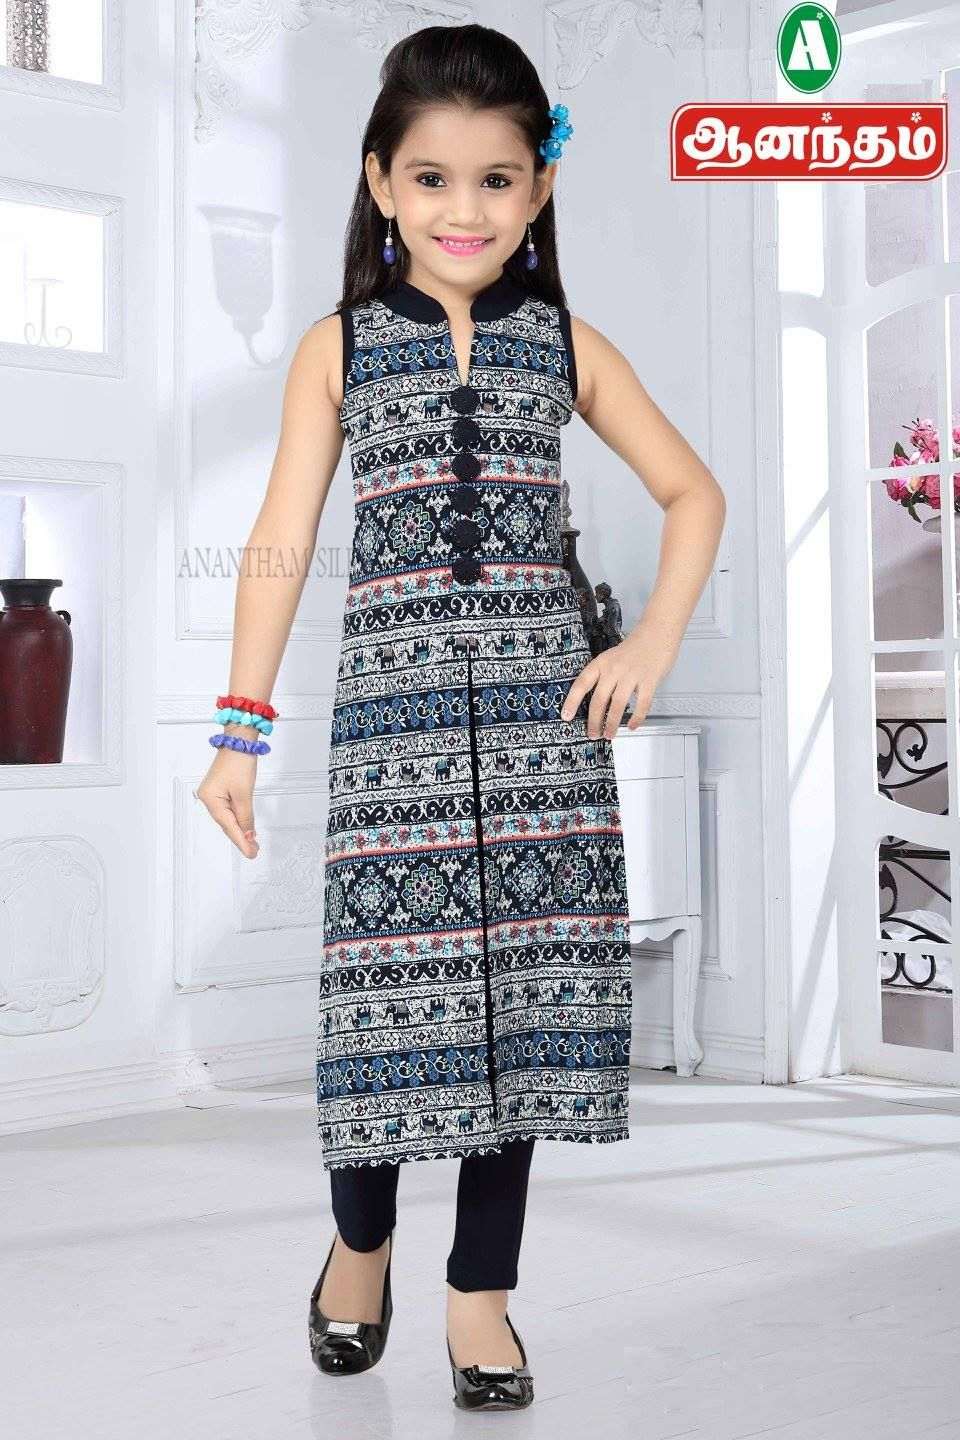 5982df51a9701 ELEGANT GIRLS READYMADE ONLY @ ANANTHAM SILKS. Find this Pin and more on  Girls's and Kid's Wear ...